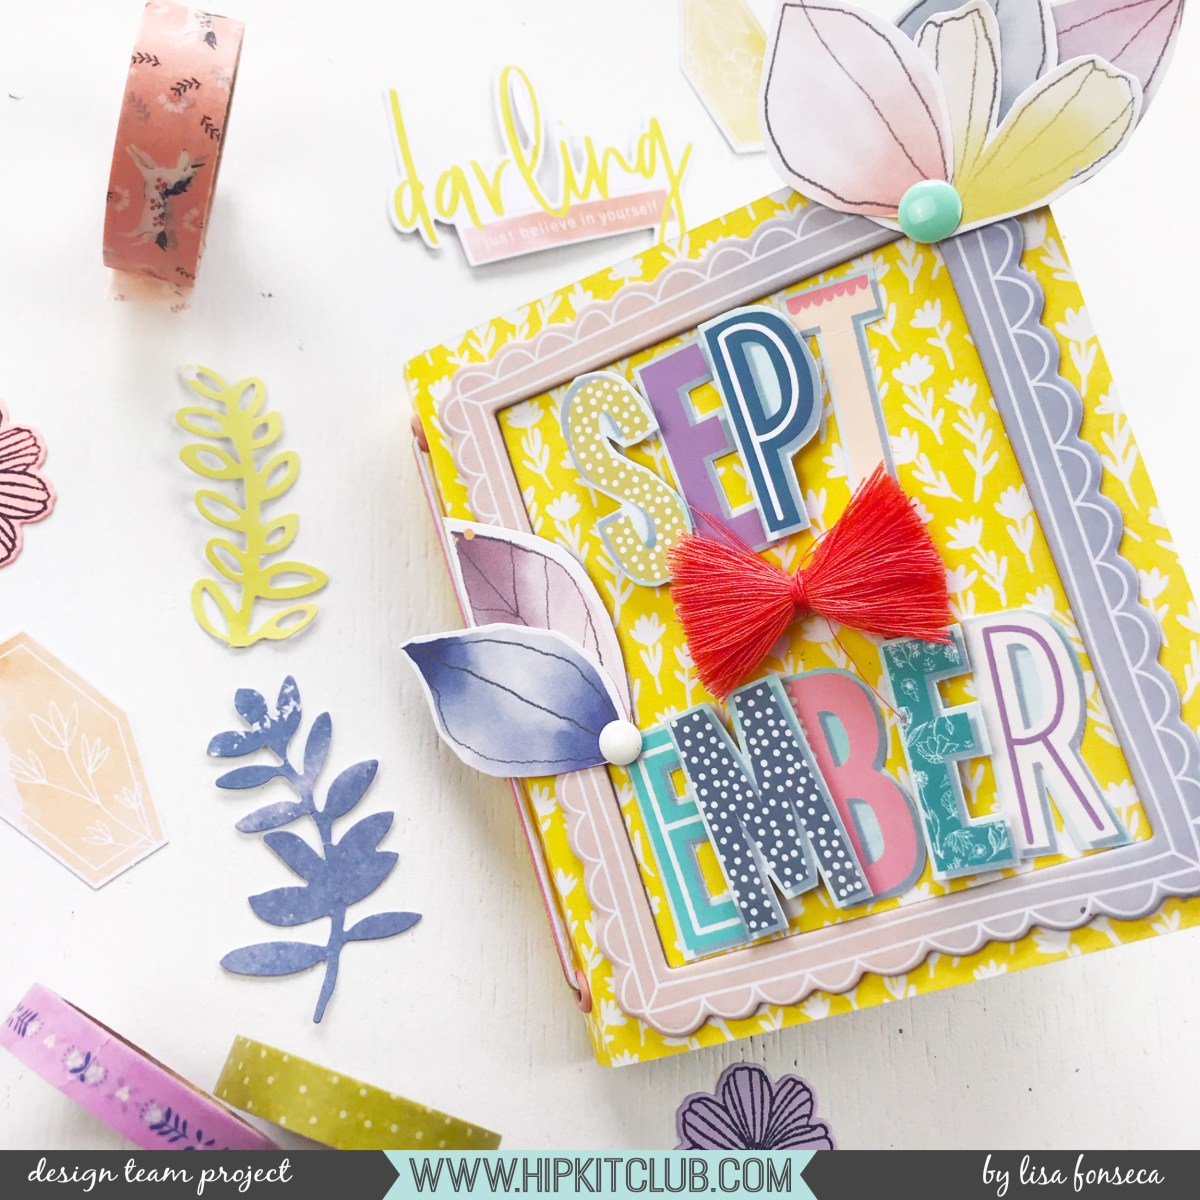 Mini Album using the September kits